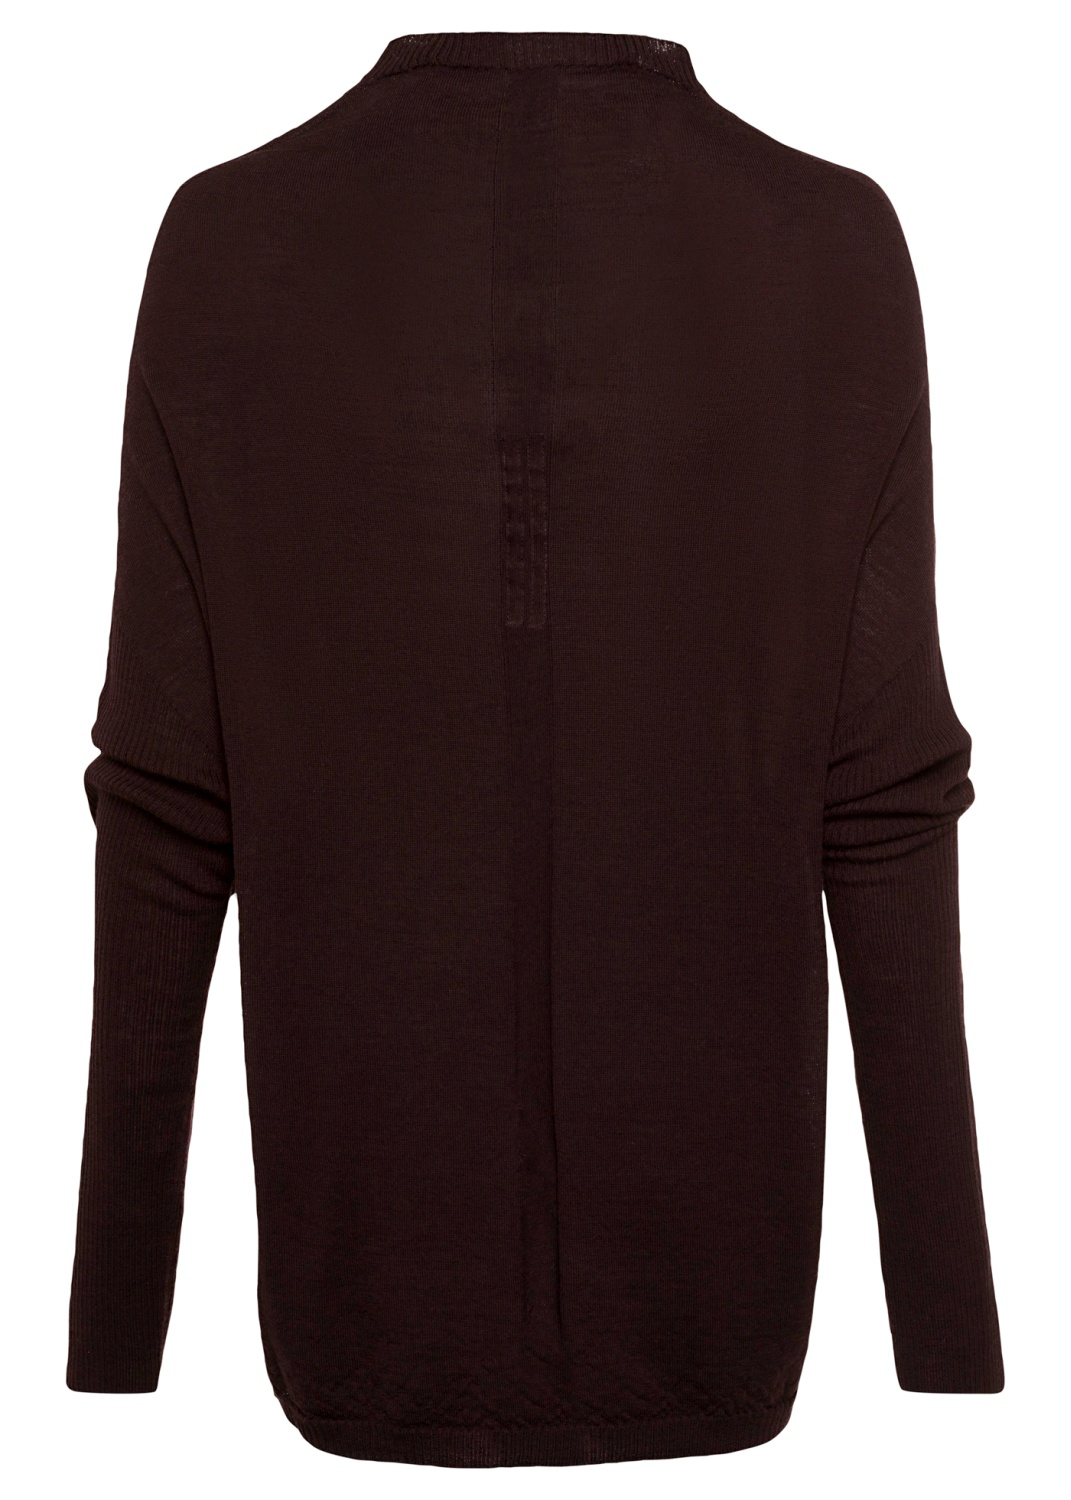 MAGLIA - CRATER KNIT image number 1